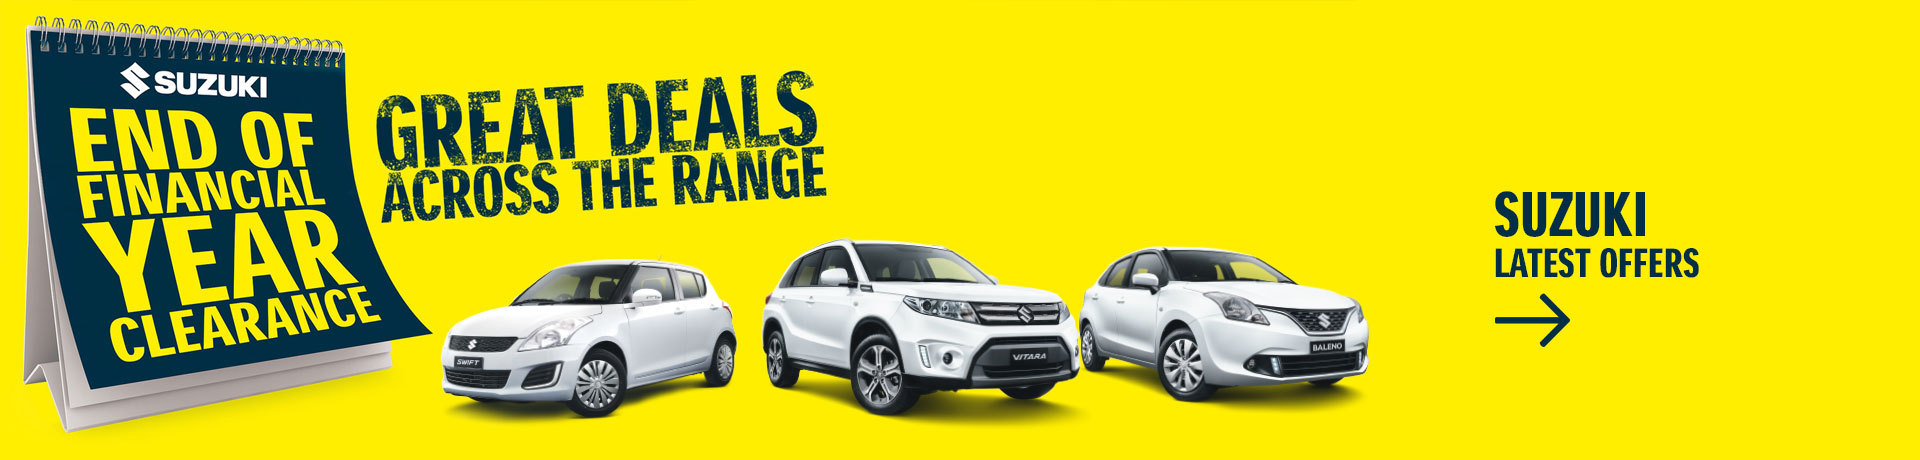 Suzuki - National Offer - End Of Financial Year Clearance - Great Deals Across T